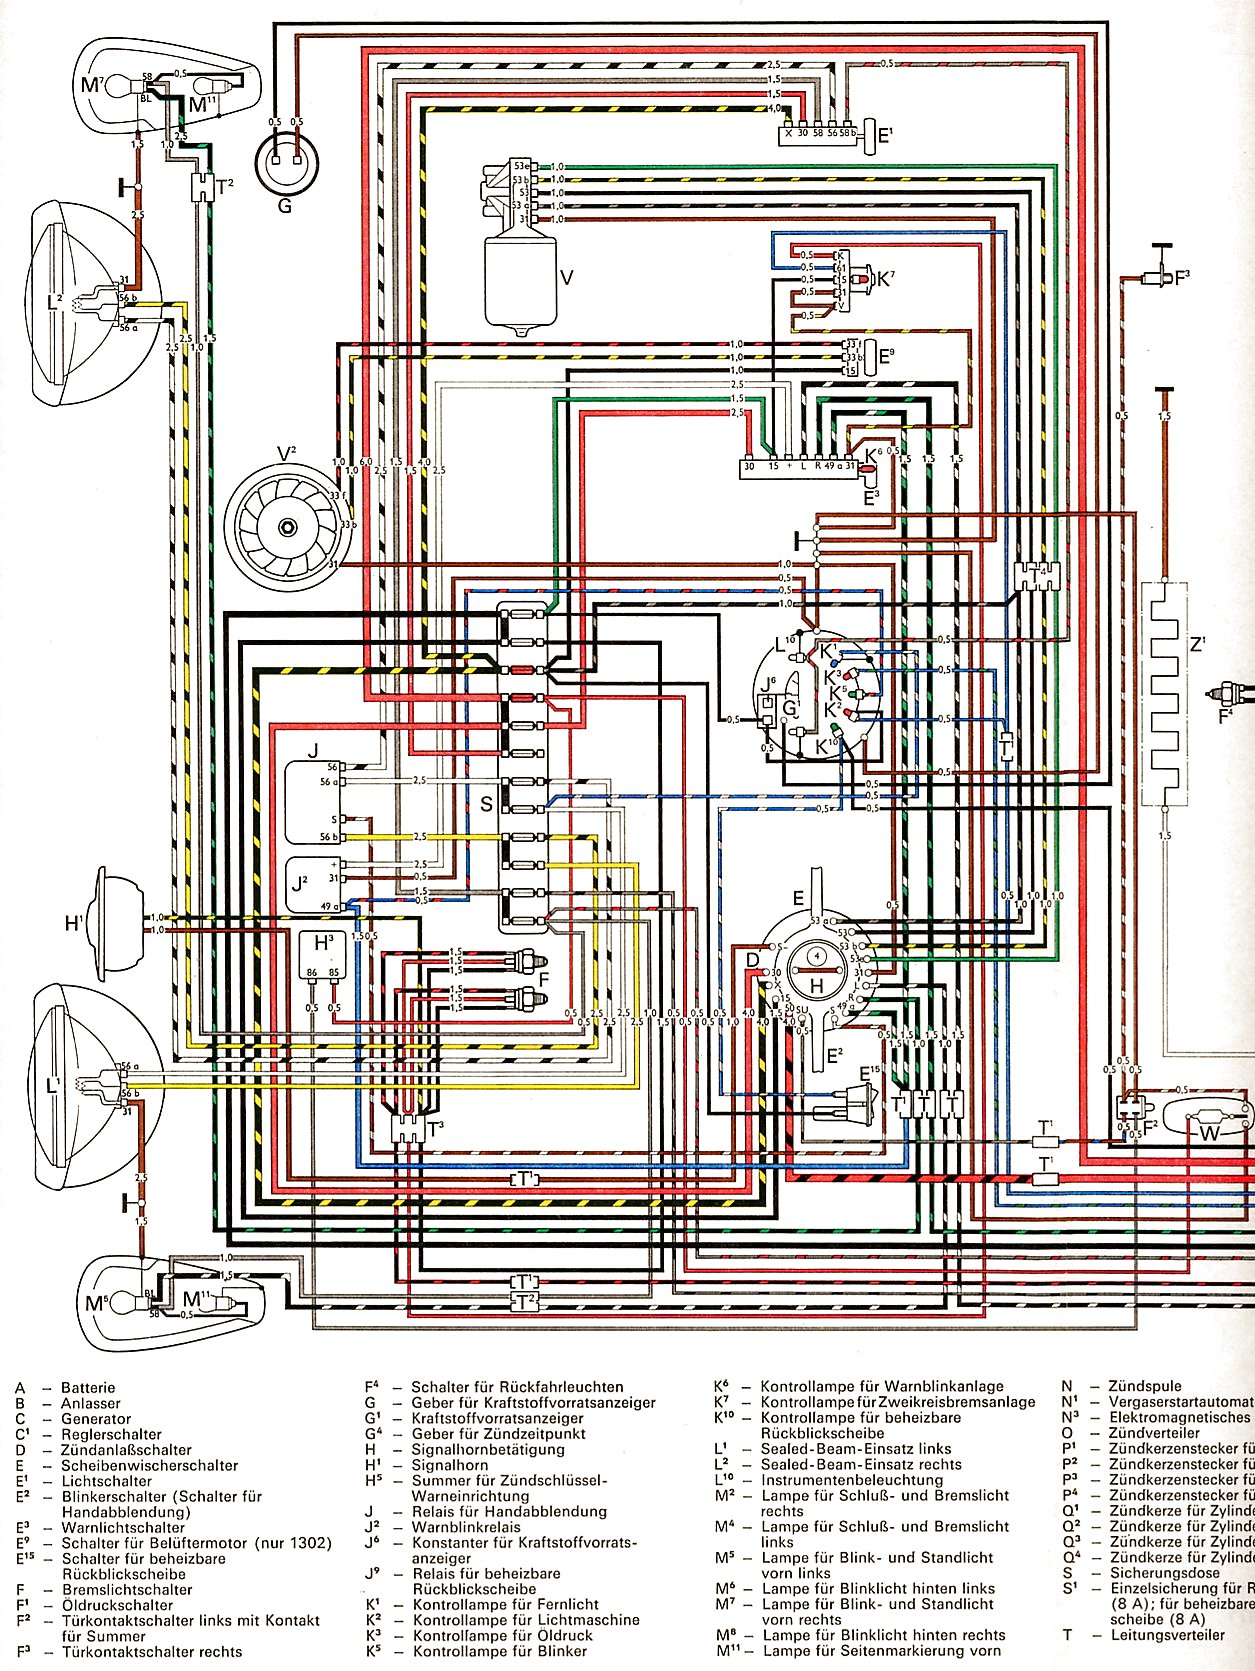 1300_and_1302_USA_from_August_1971 1 wiring diagram shoptalkforums com 1970 vw beetle wiring diagram at panicattacktreatment.co